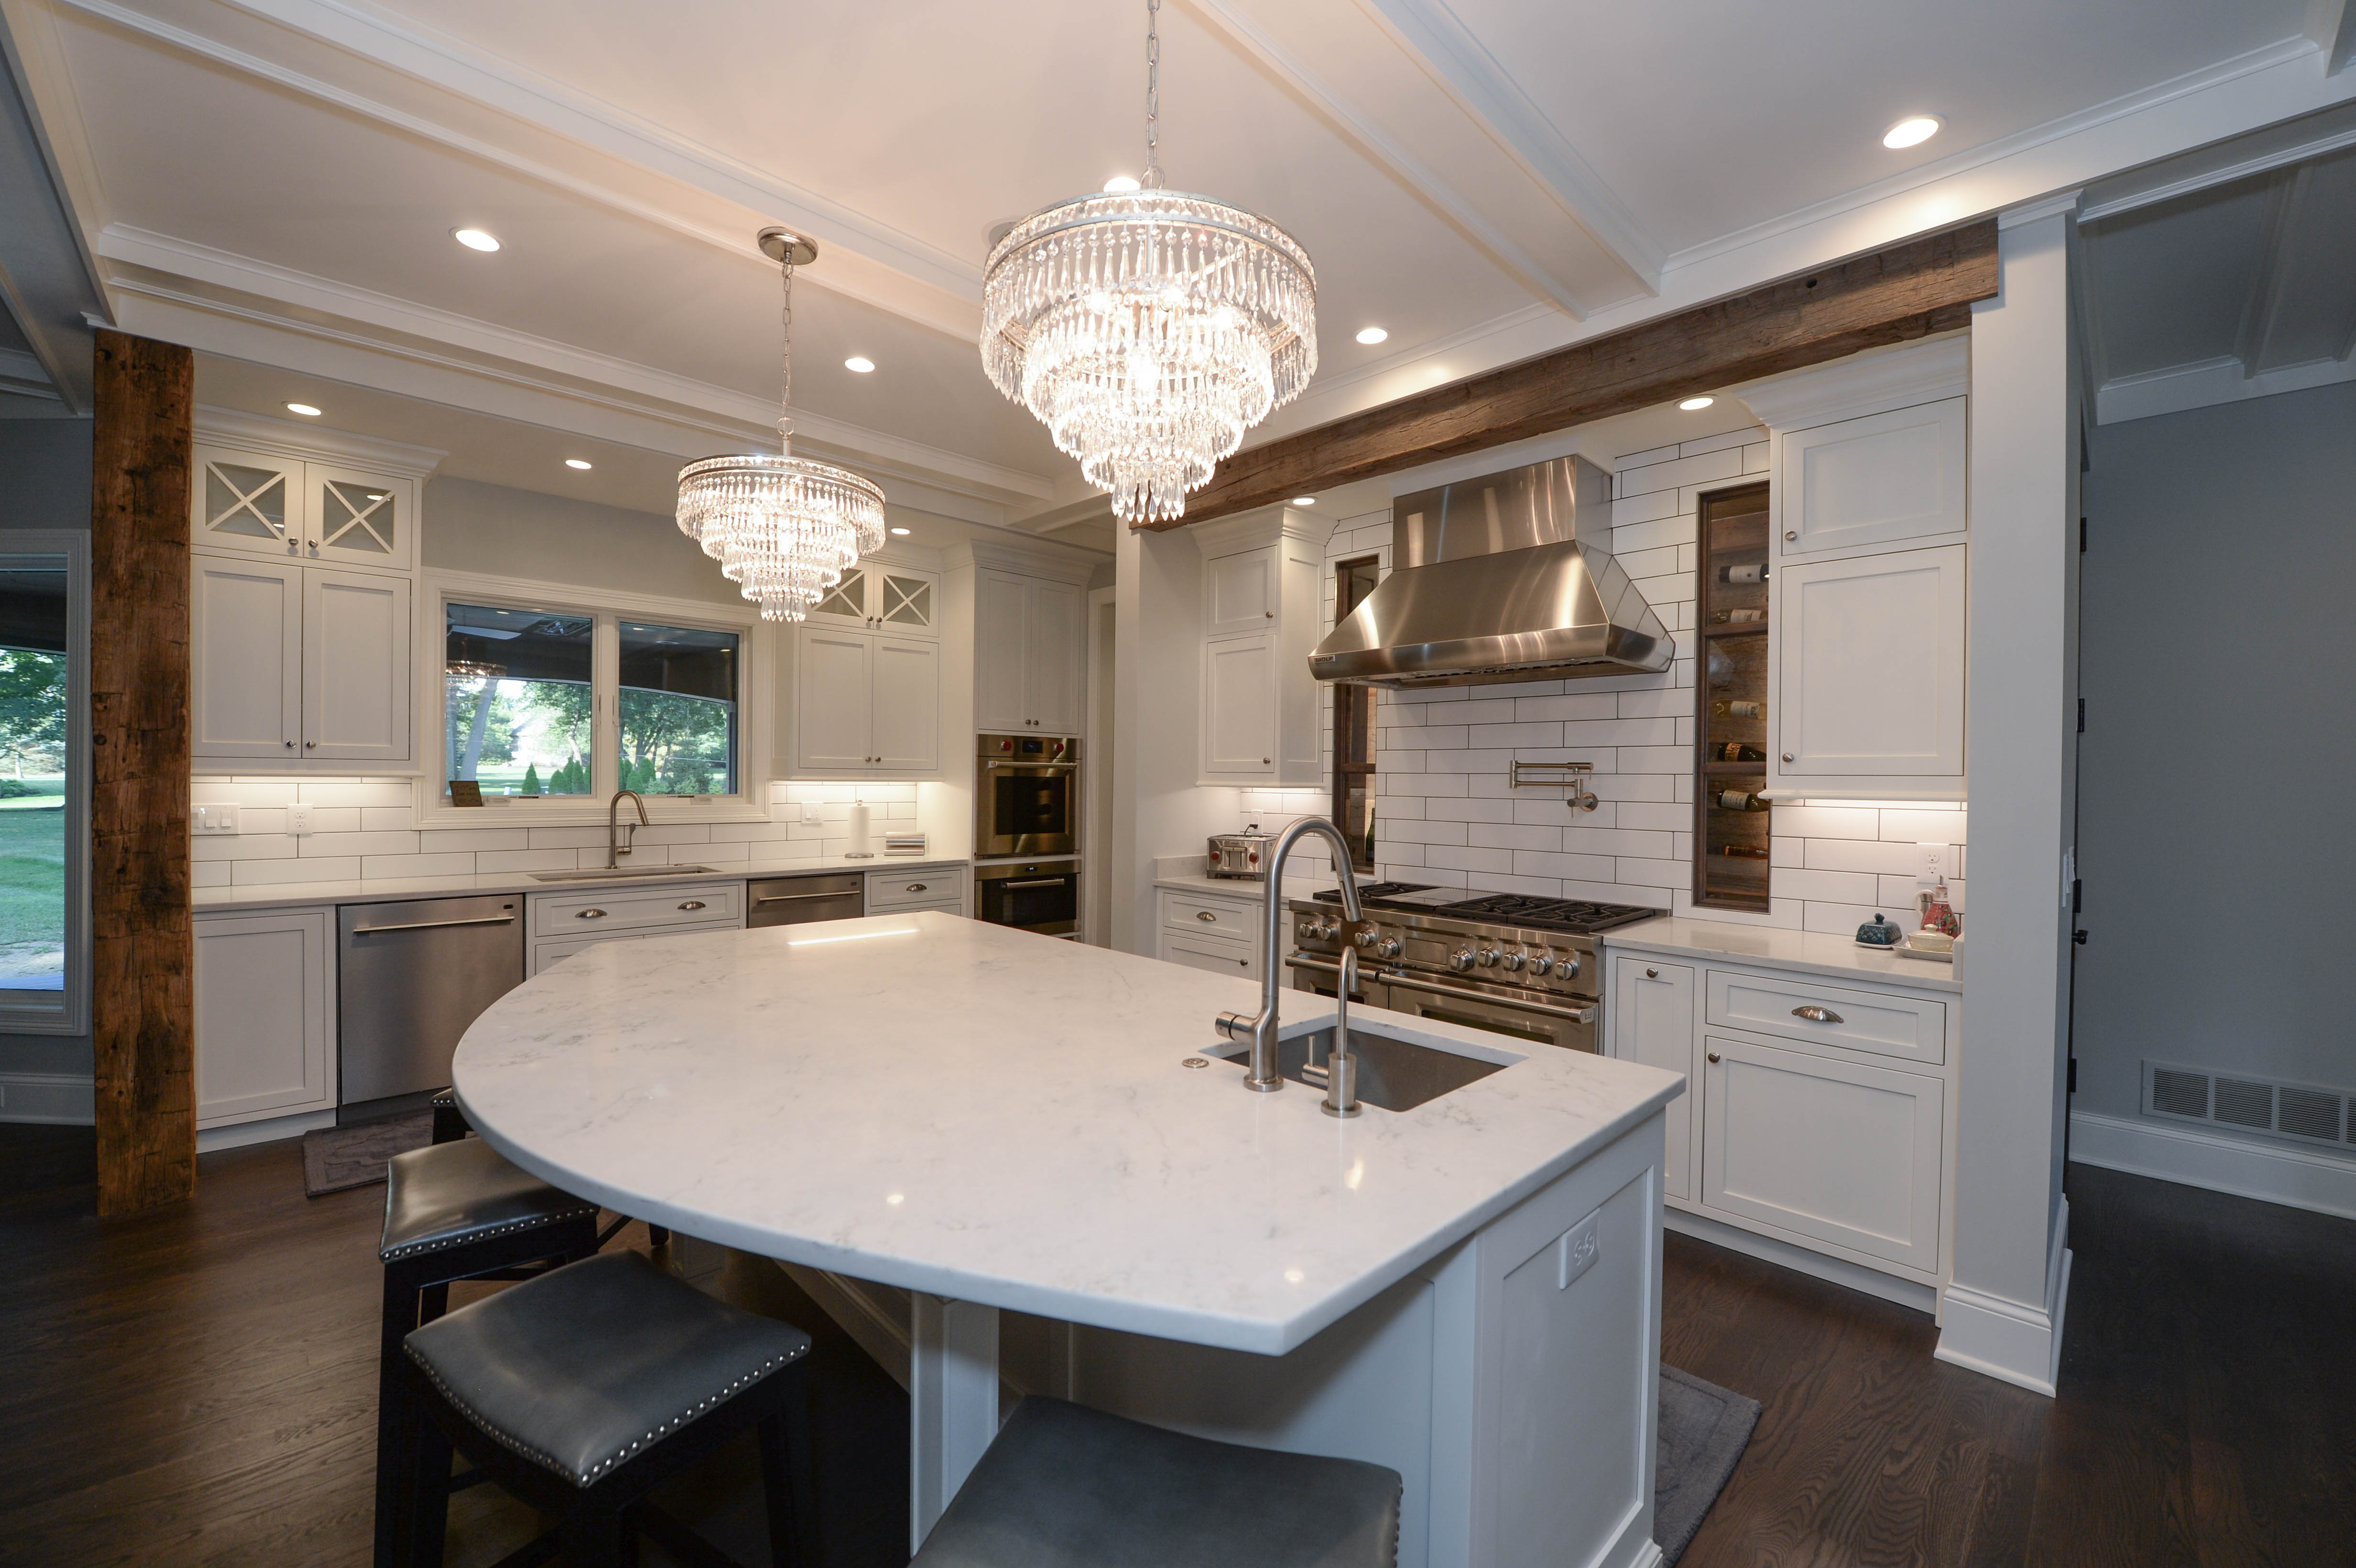 ready for your dream kitchen